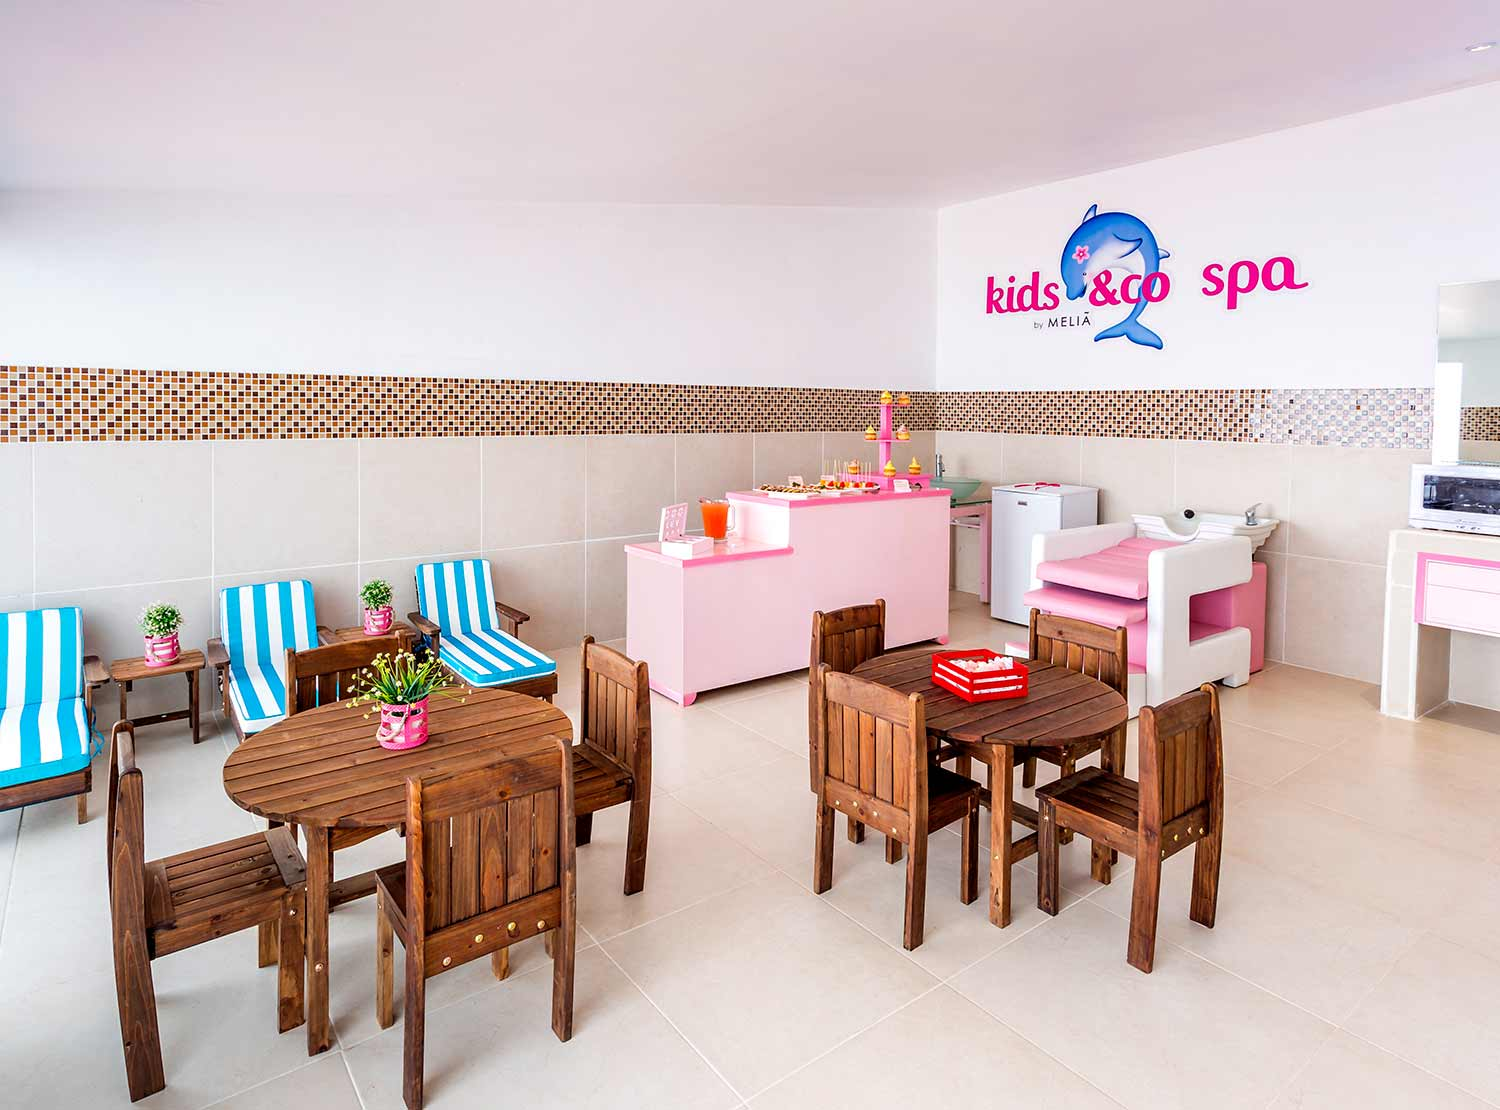 Kids & Co Spa